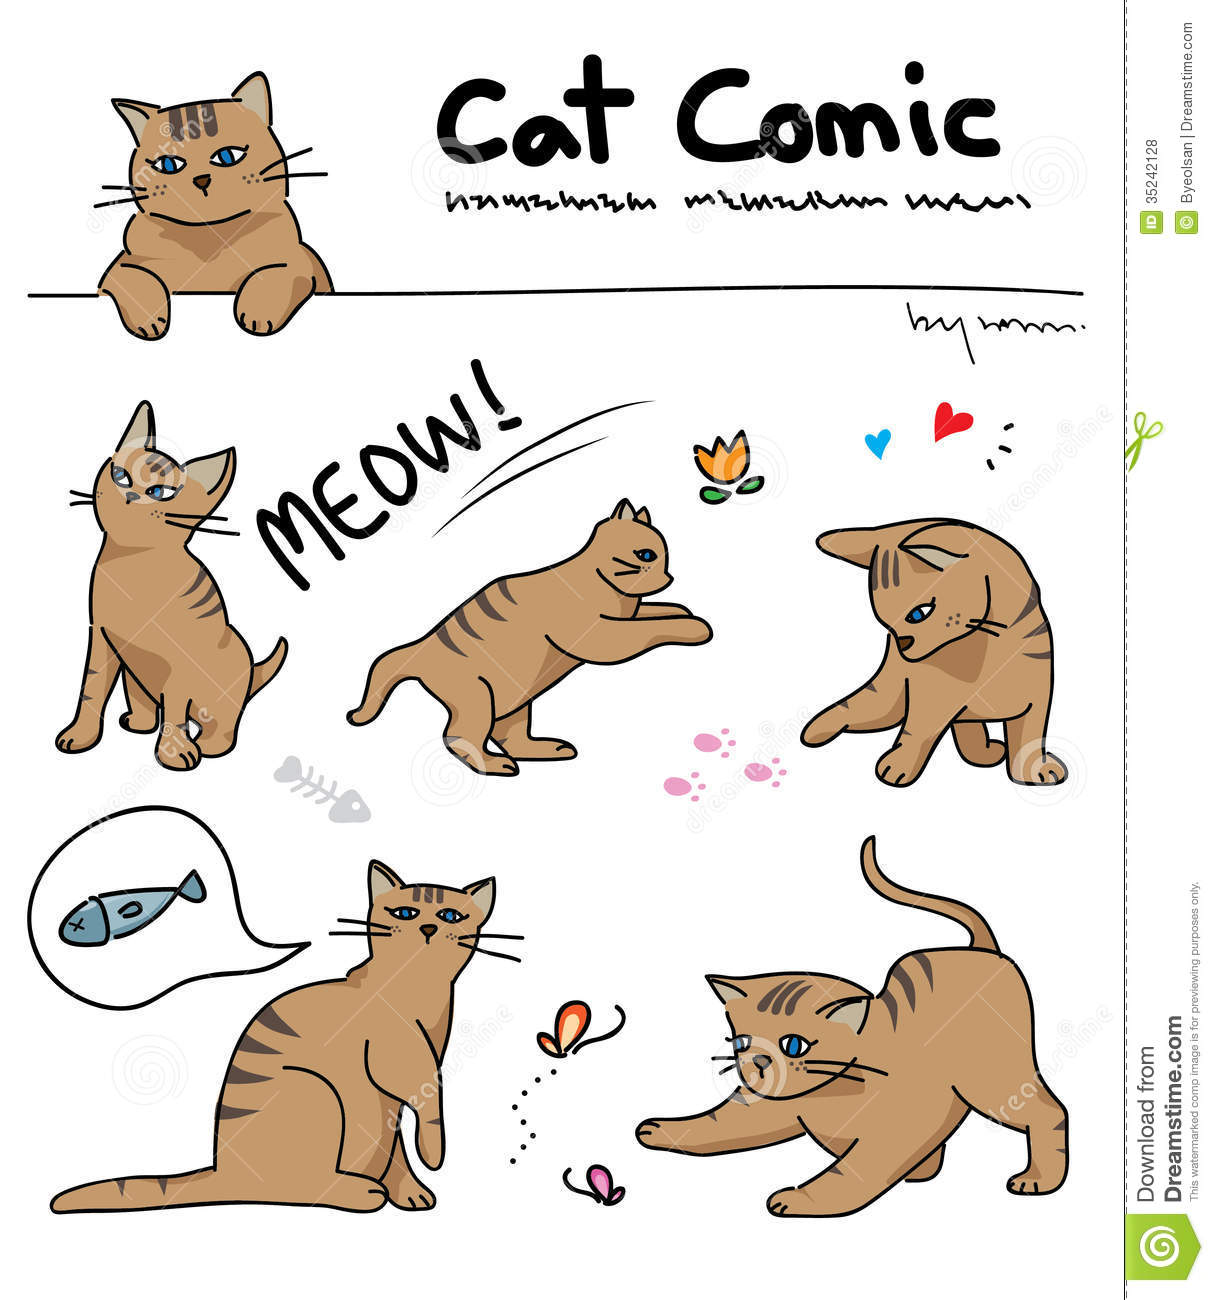 Cat Comic Royalty Free Stock Photos Image 35242128